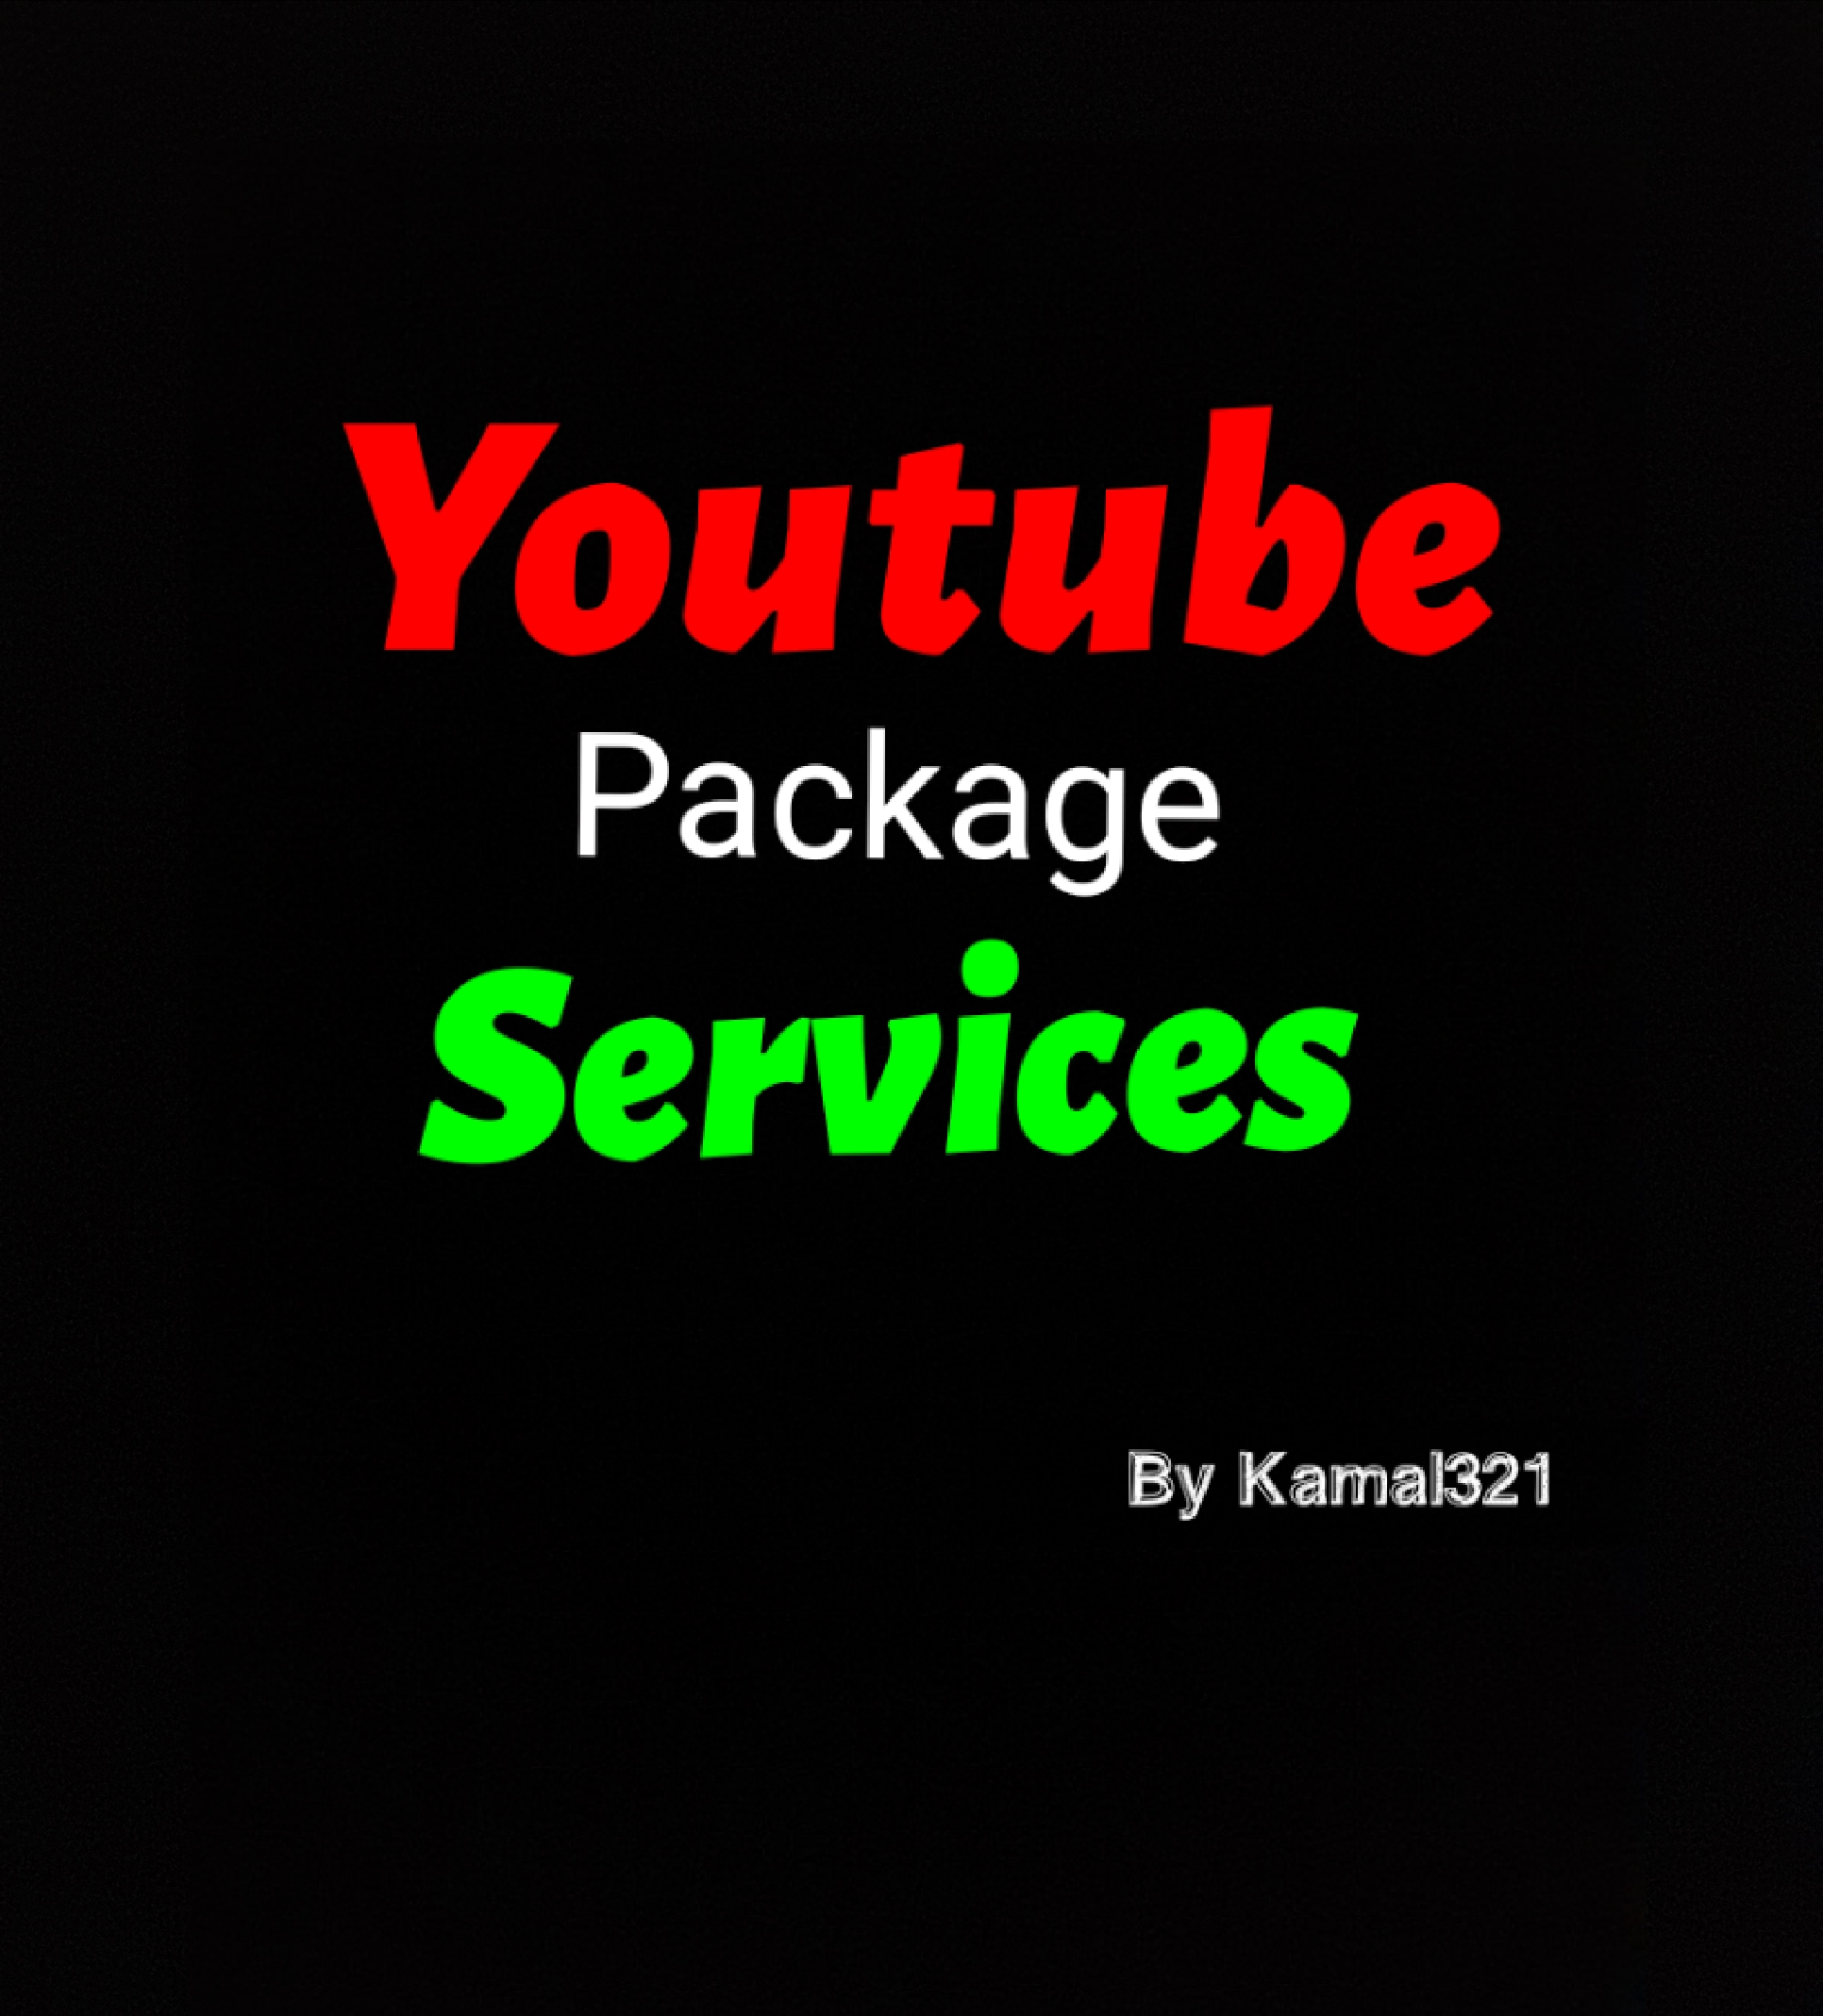 Youtube package services real & fast delivery